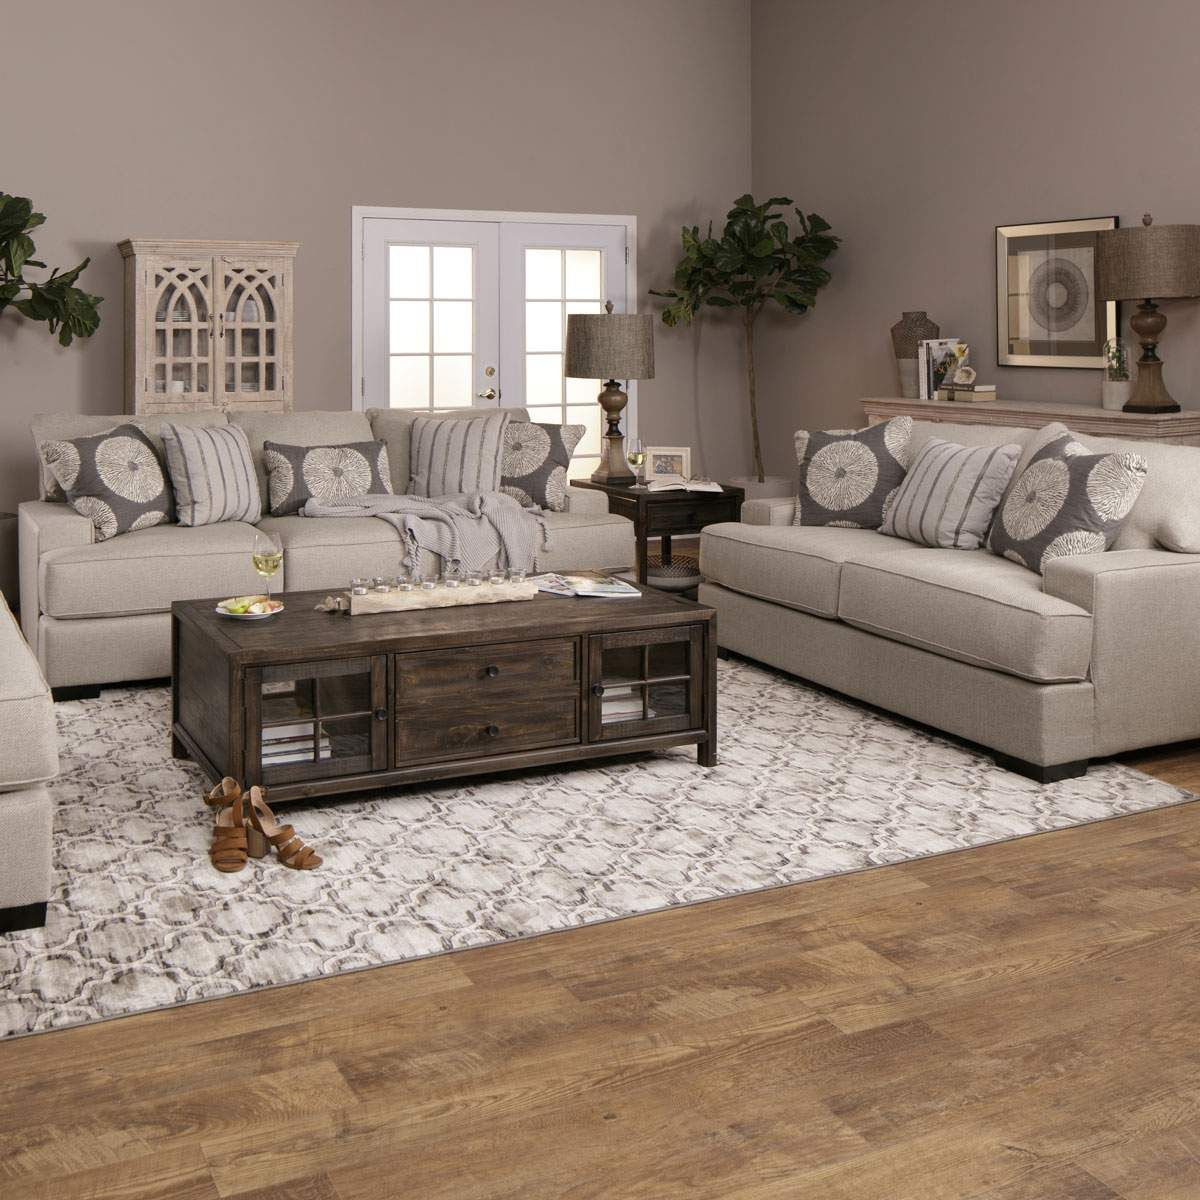 Transform Your Home Into Your Own Cottage Getaway With The Light Airy Colors Of The Wynwood Living R Farm House Living Room Rustic Living Room Living Room Sets #olsberg #steel #living #room #set